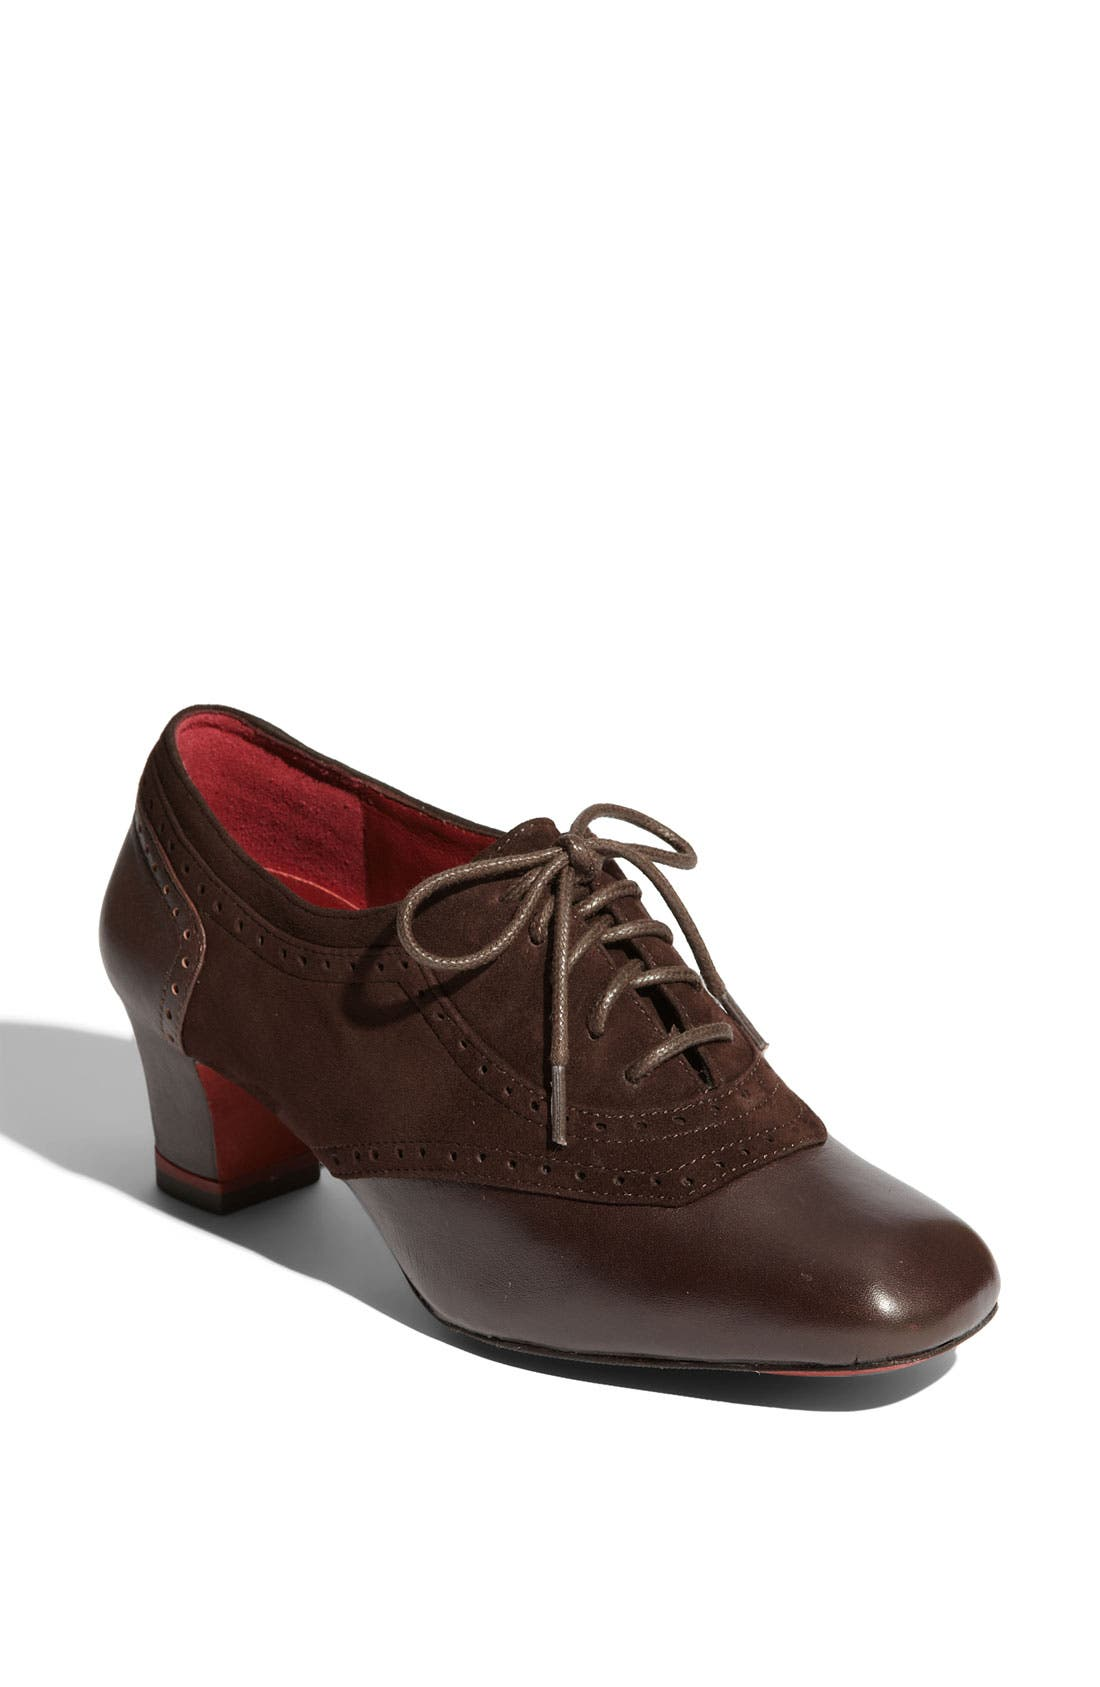 Main Image - Oh! Shoes 'Minerva' Oxford Pump